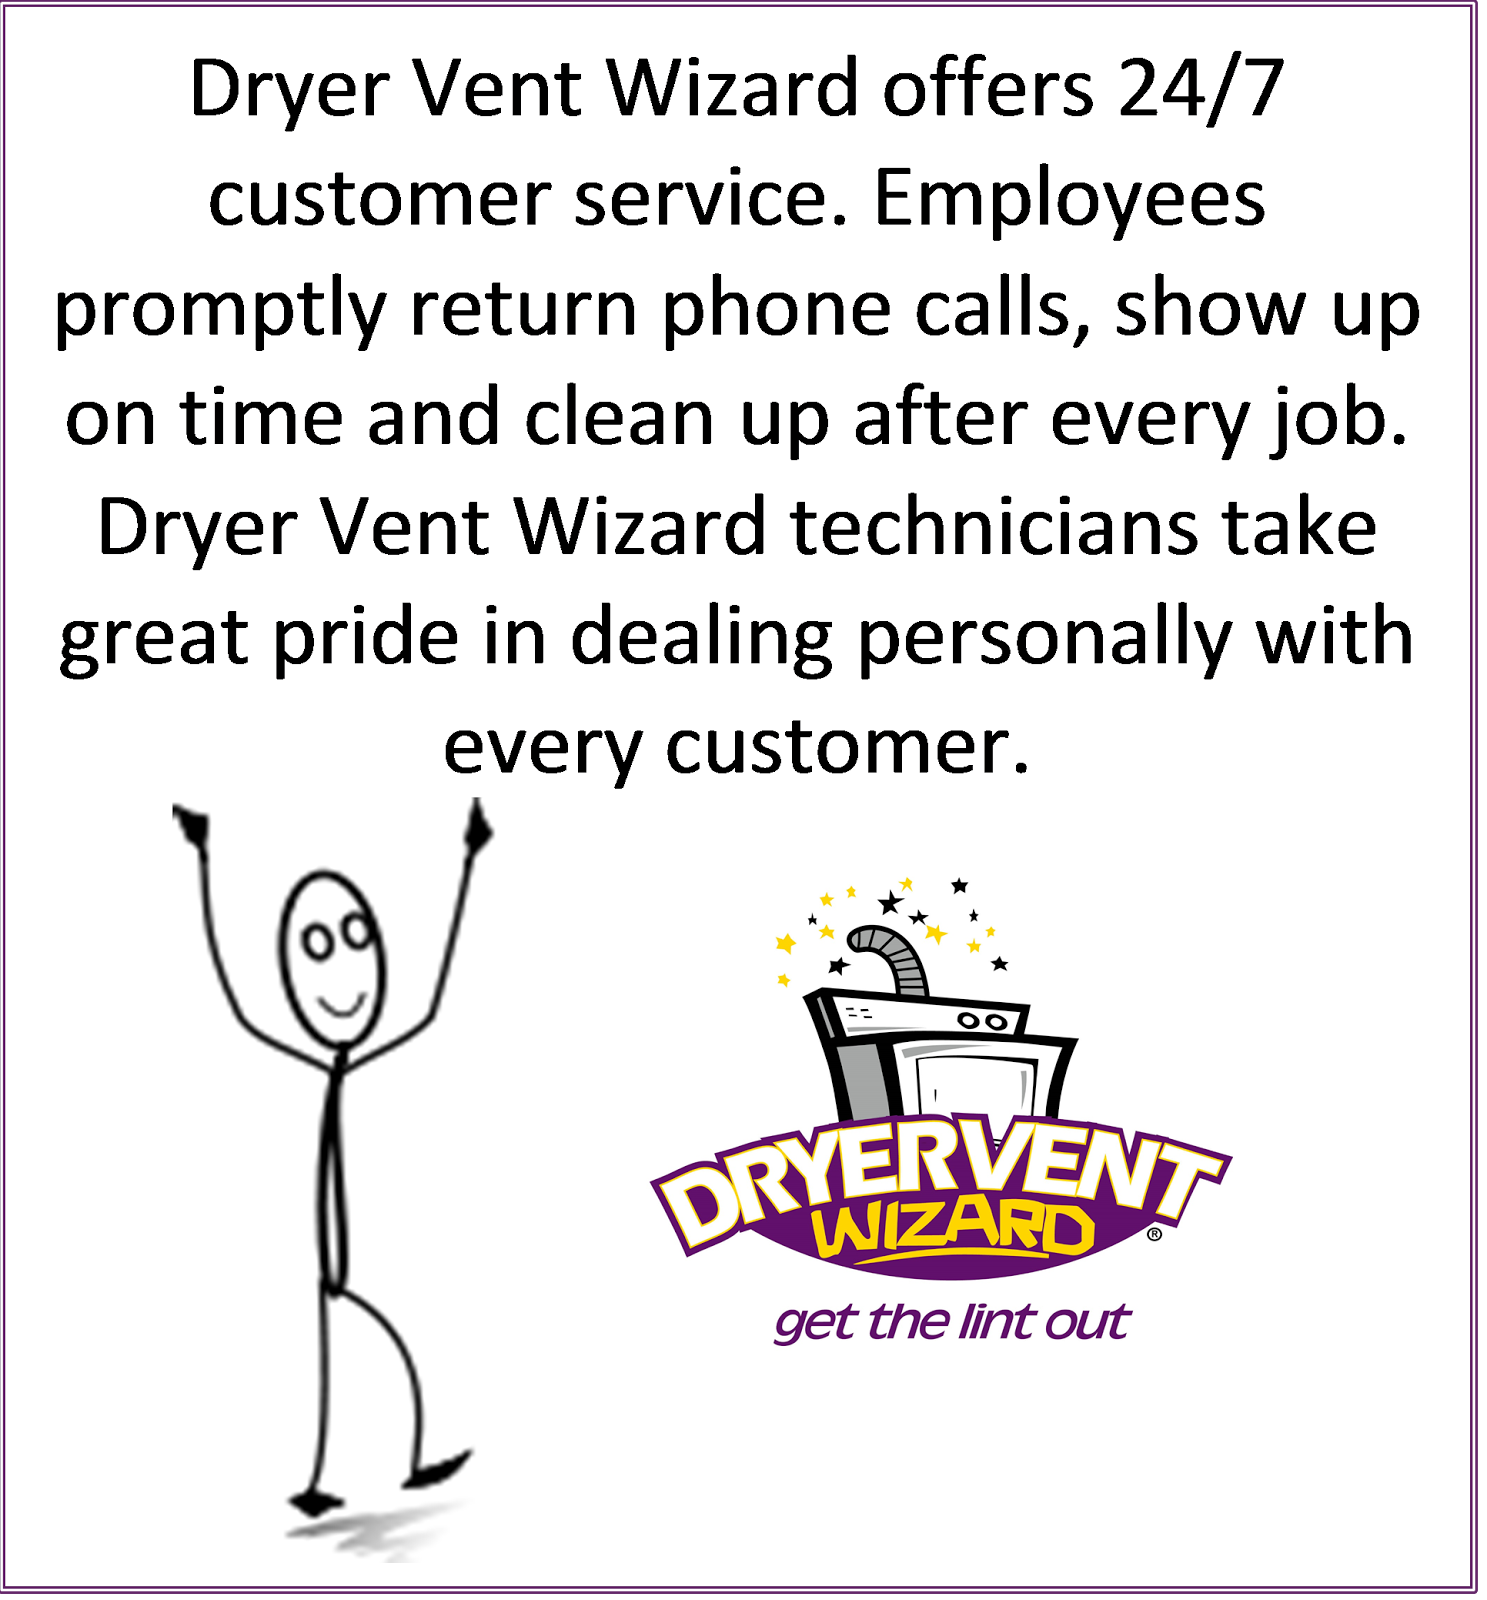 More About Dryer Vent Wizard